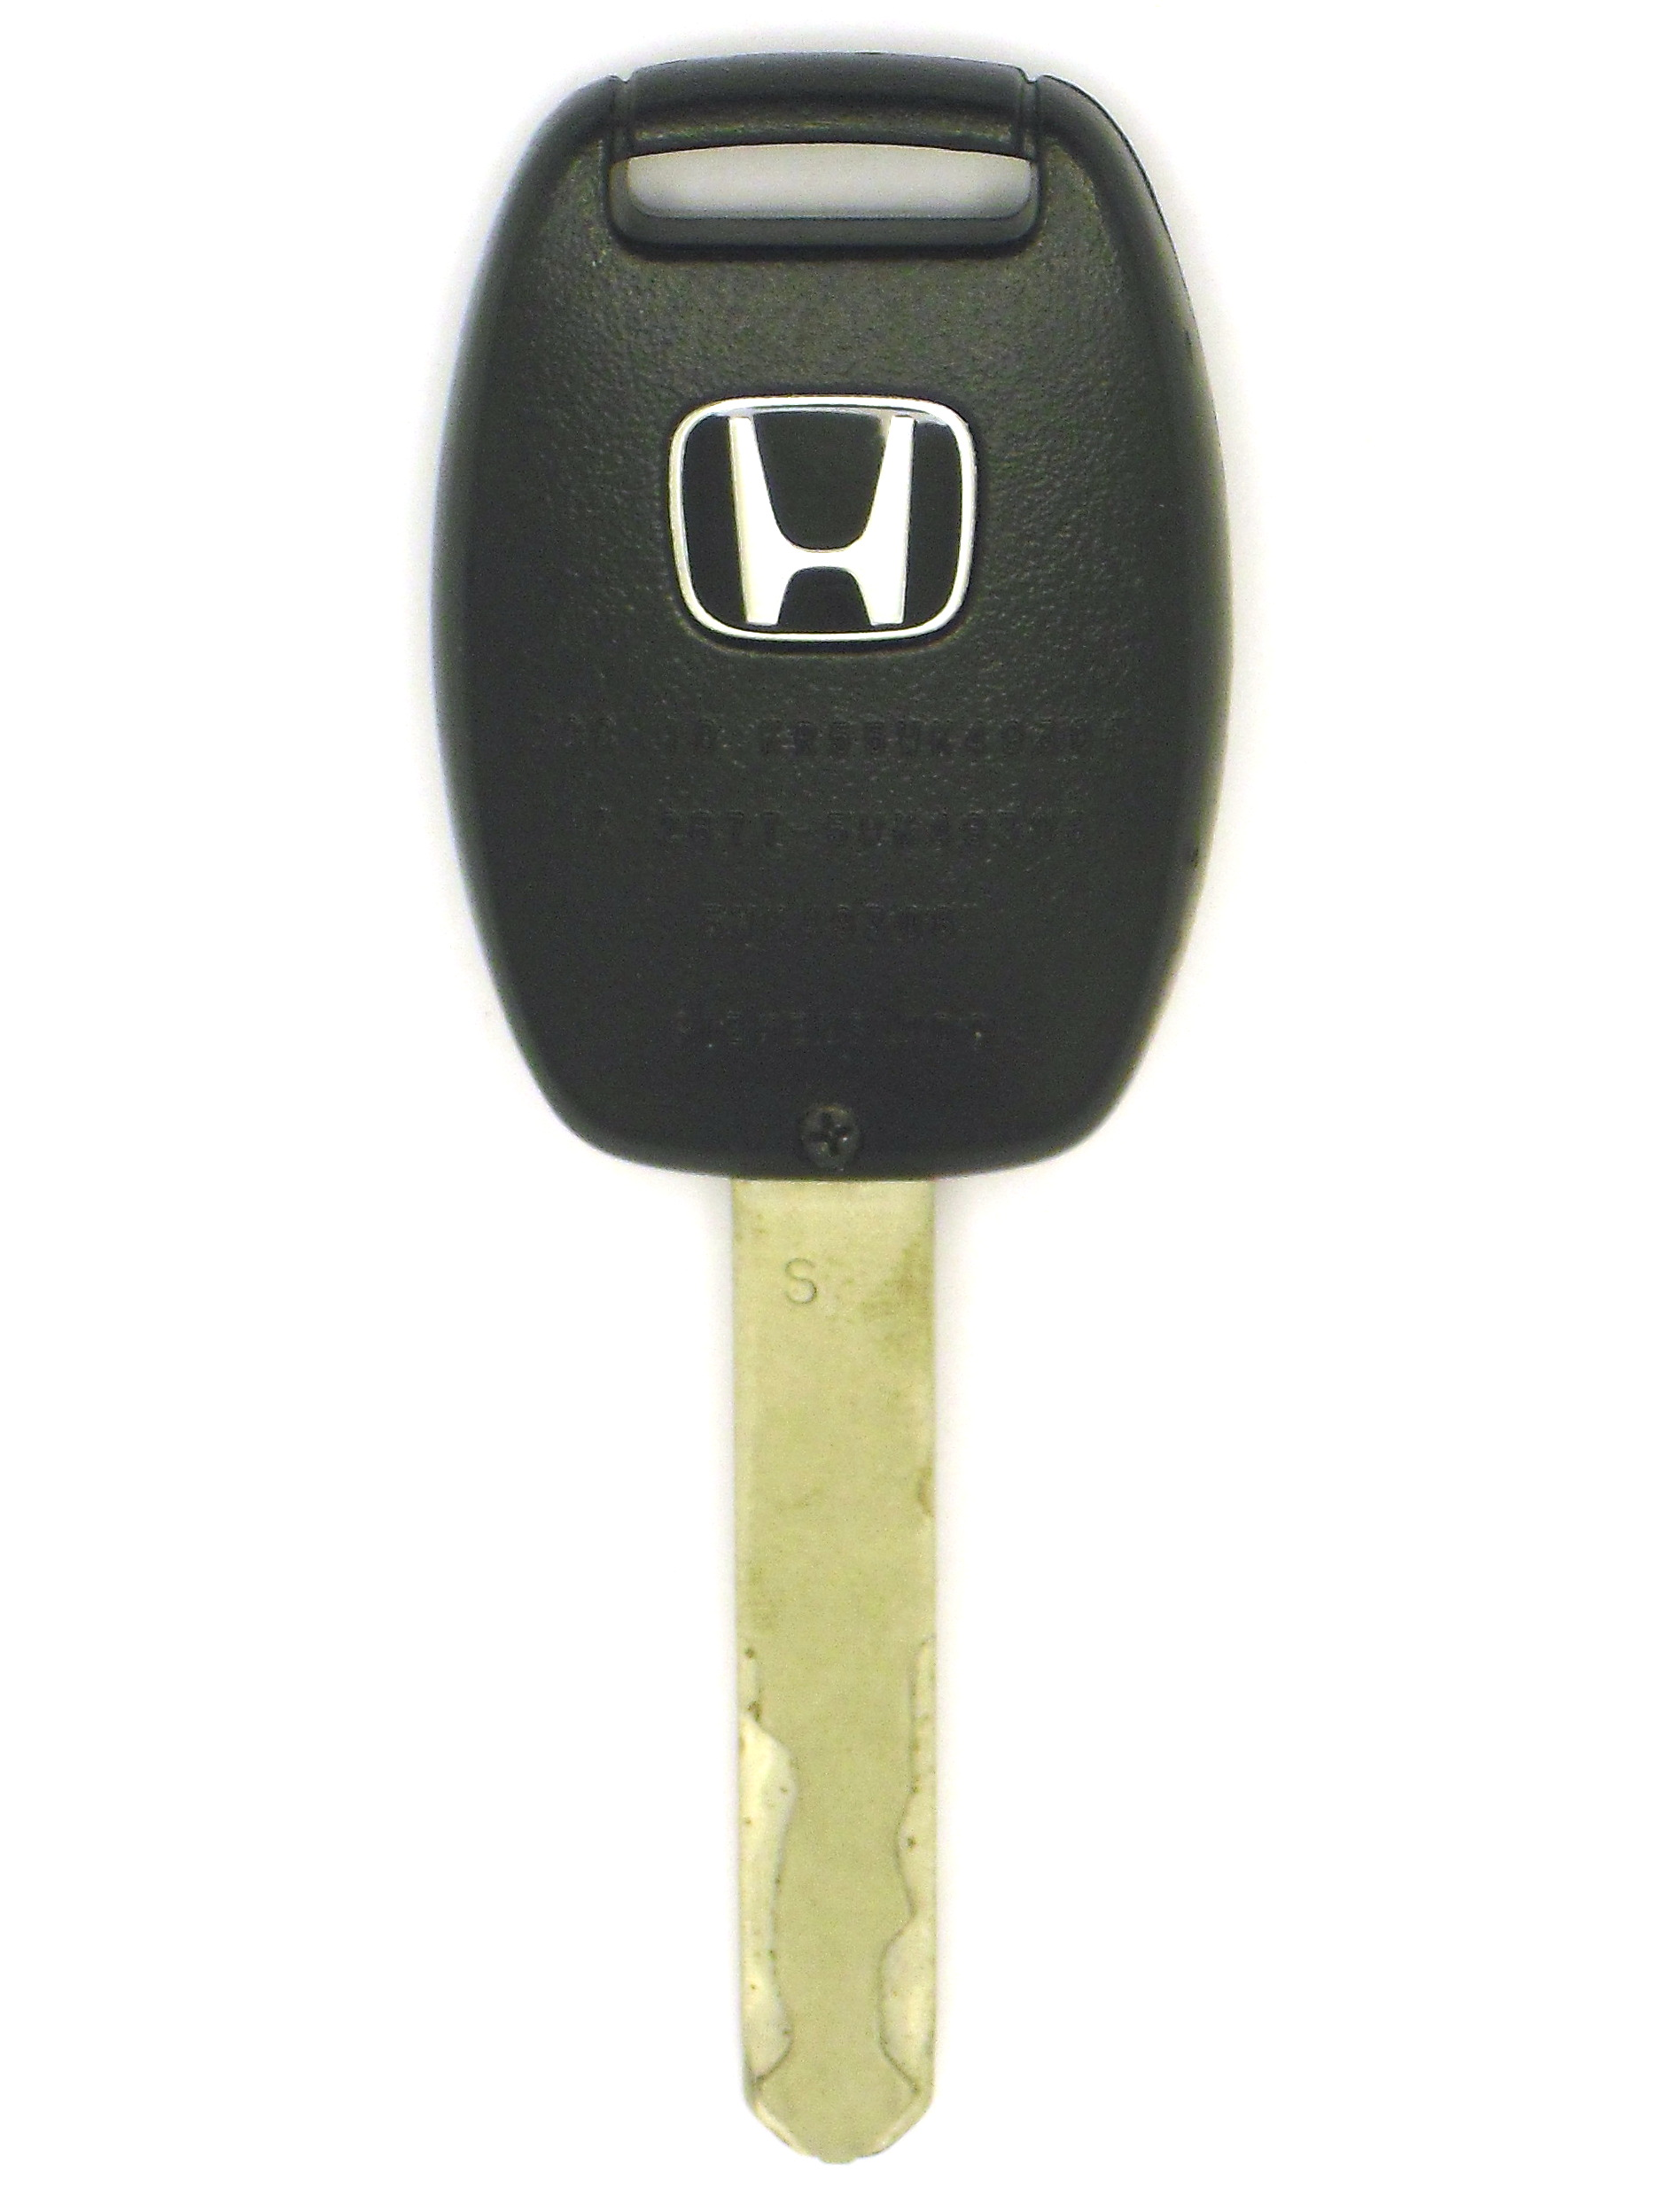 Honda Remote & Key Combo - 4 Button w/ SUV Hatch for 2015 Honda Pilot - iKeyless.com